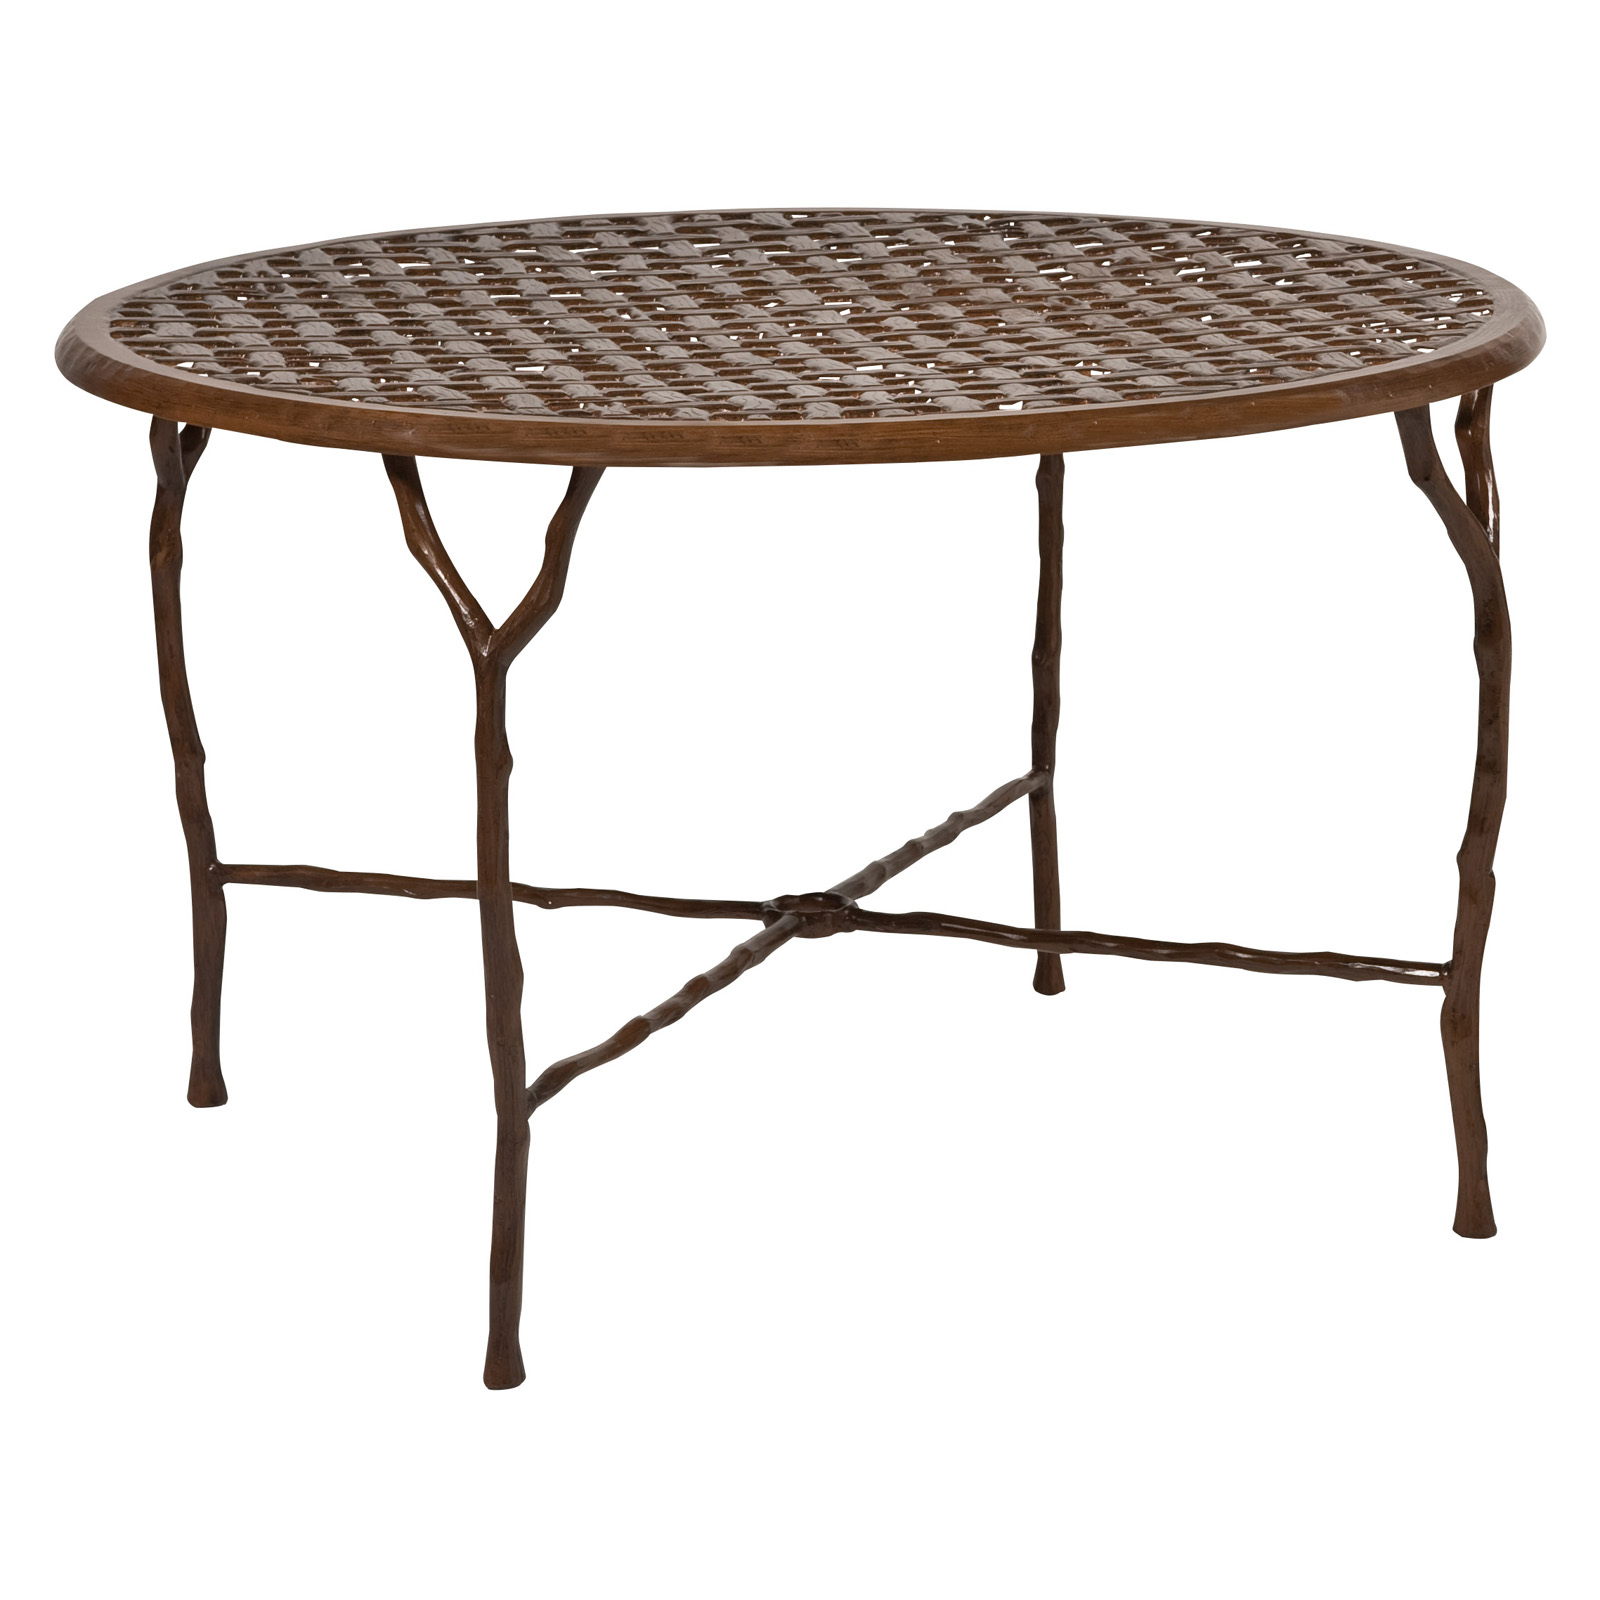 woodard latour 48 in round dining table with umbrella hole patio dining tables at hayneedle. Black Bedroom Furniture Sets. Home Design Ideas